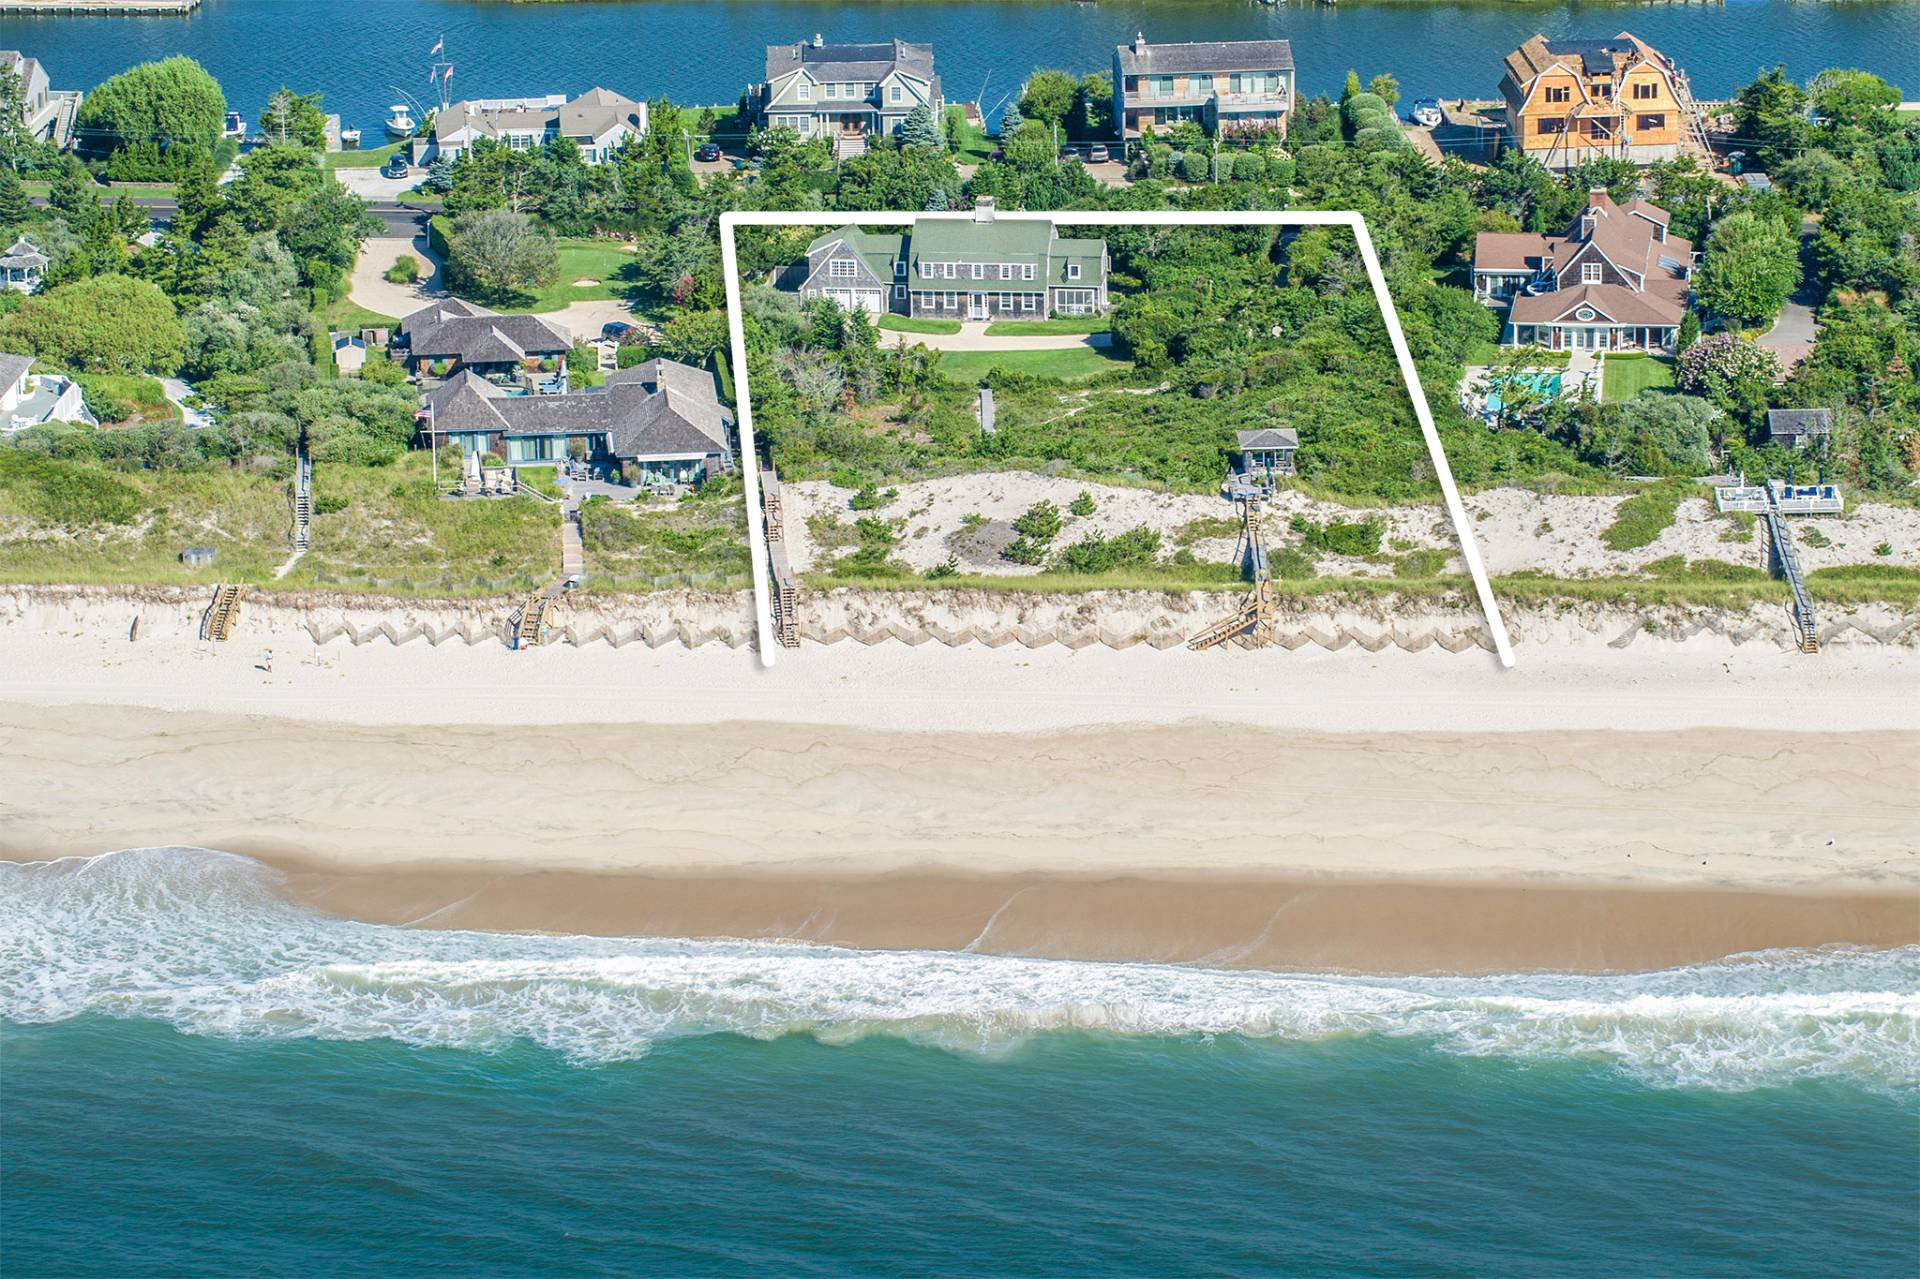 Casa Unifamiliar por un Venta en Enchanting 'sundune' On 1.6 Acres & 175 Ft. Ocean Frontage 42 Dune Road, Quogue, Nueva York